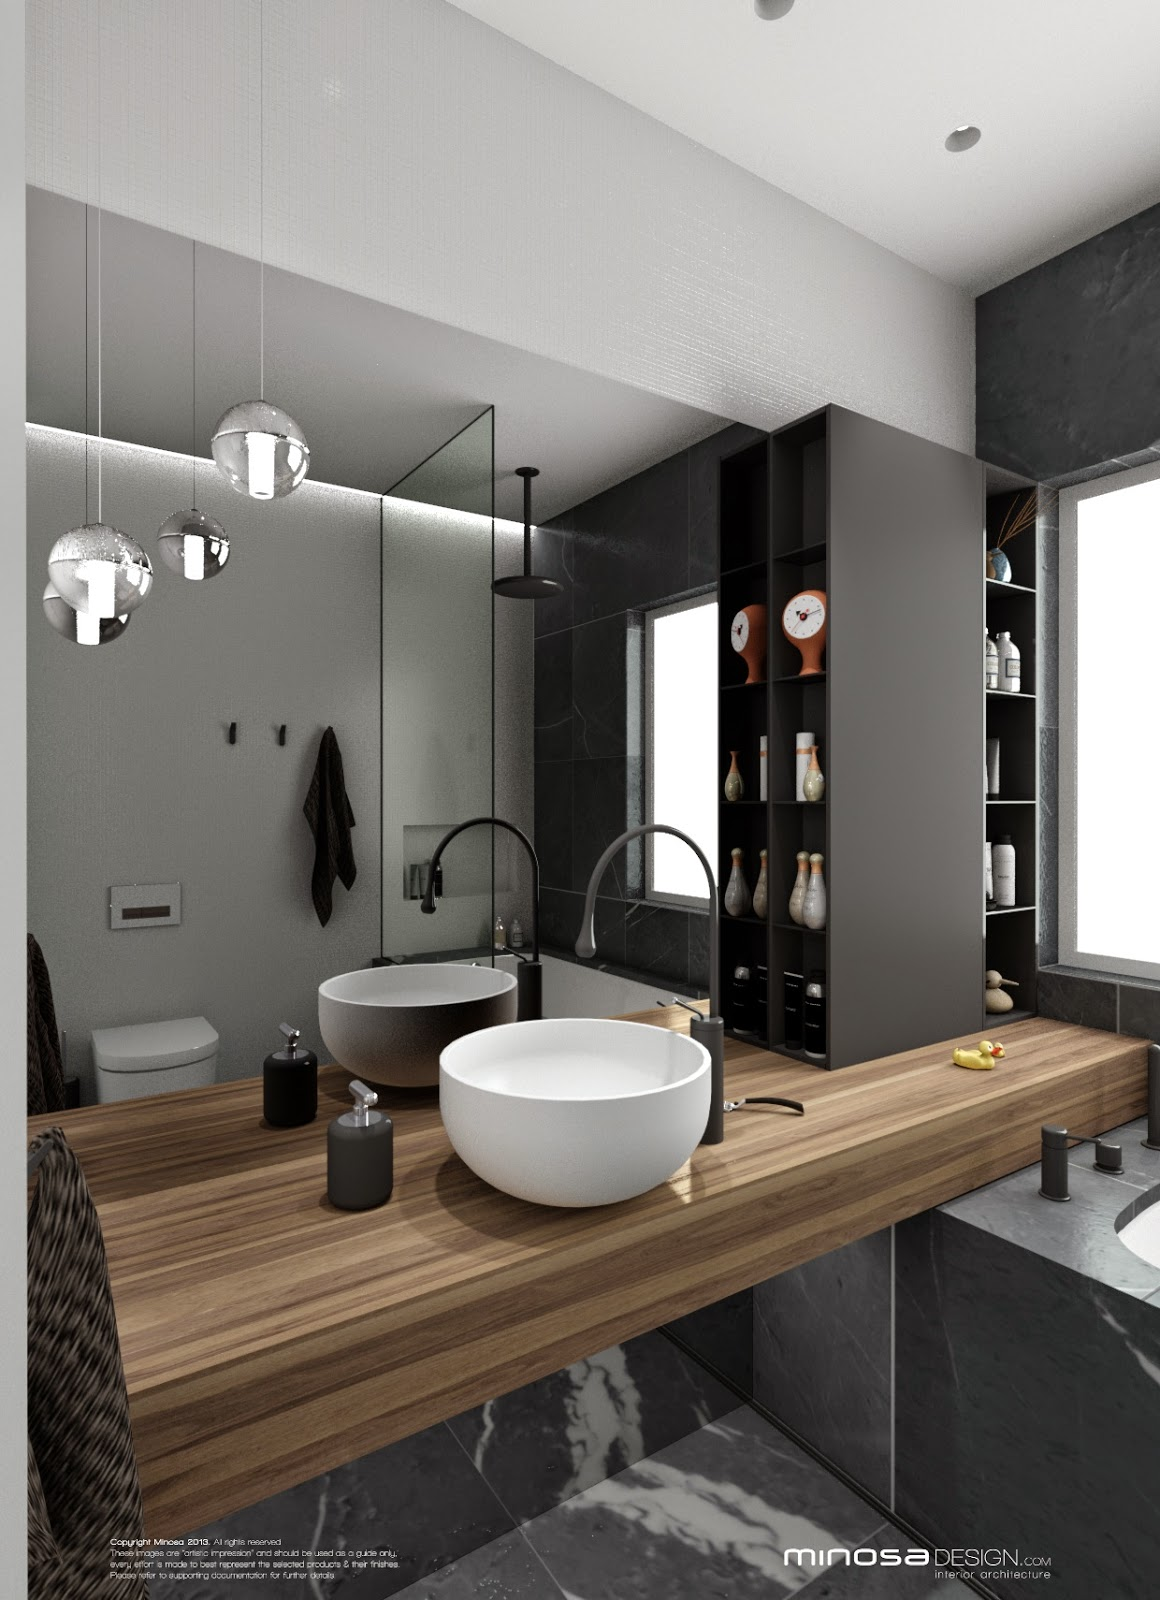 Minosa bathroom design small space feels large for Bathroom design small